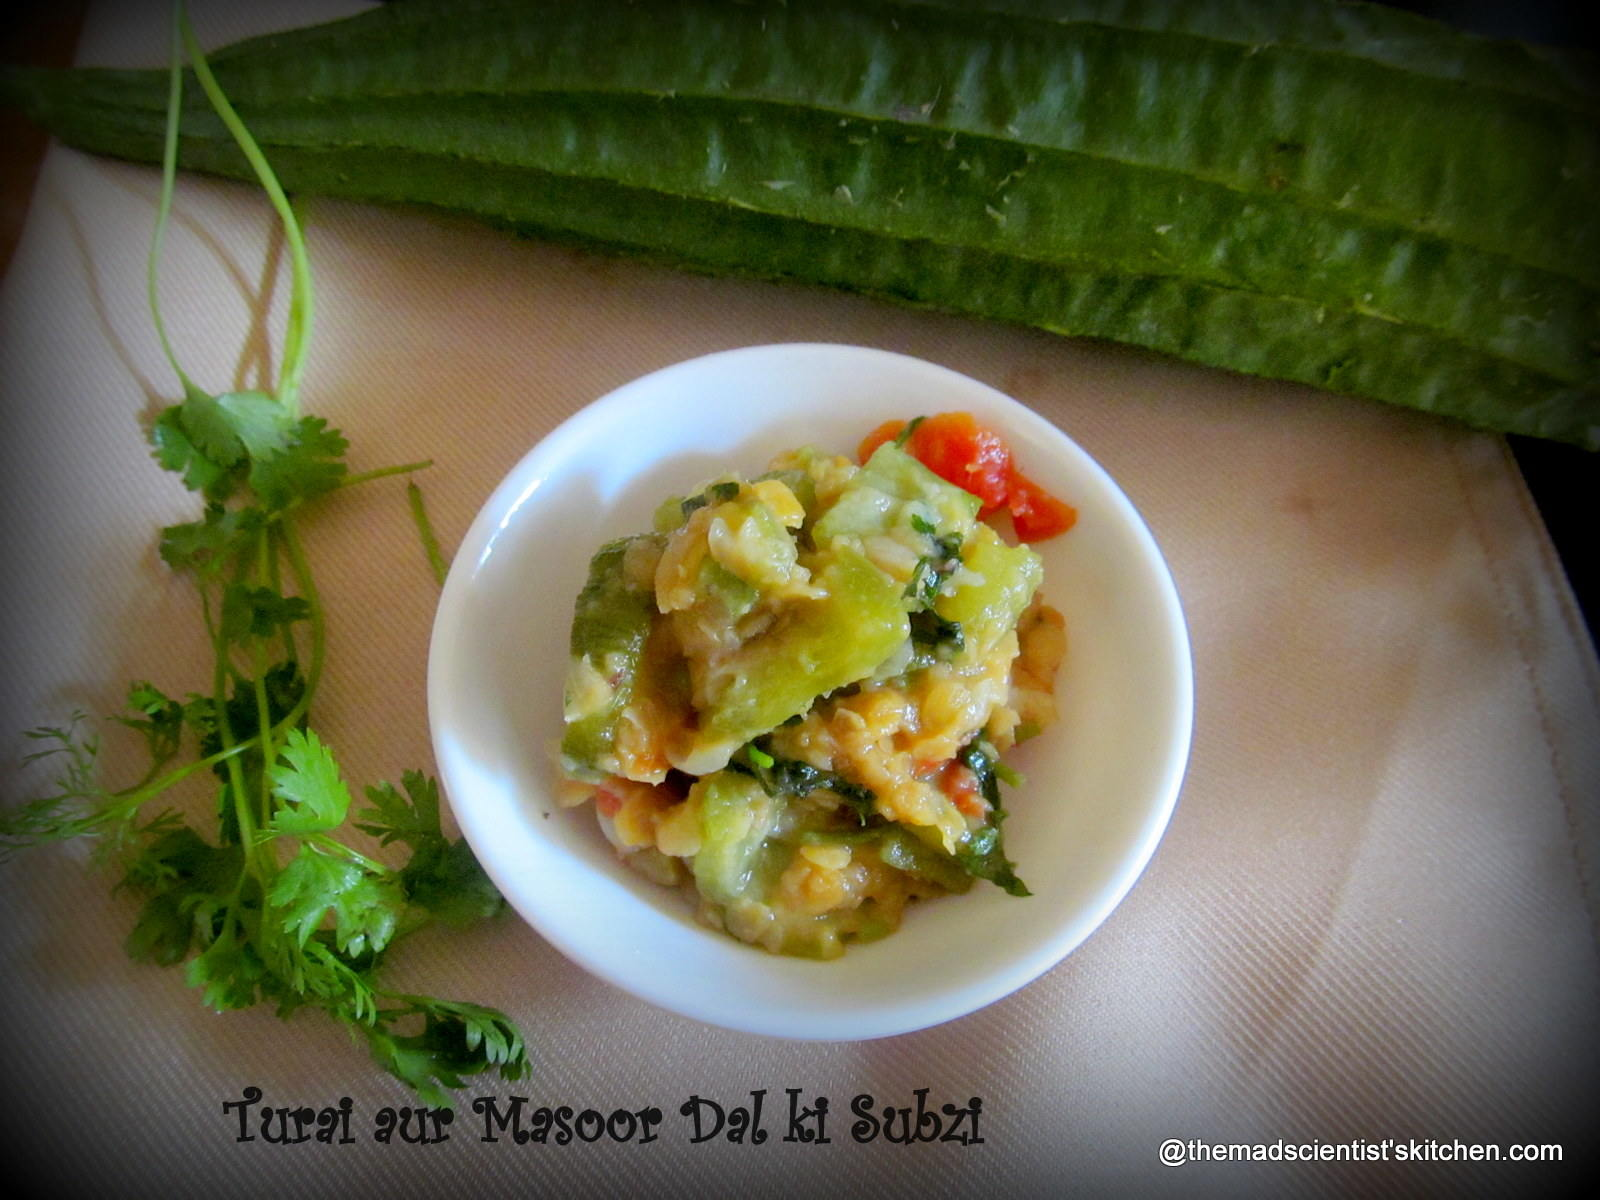 Ridge Gourd and Masoor Dal Vegetable